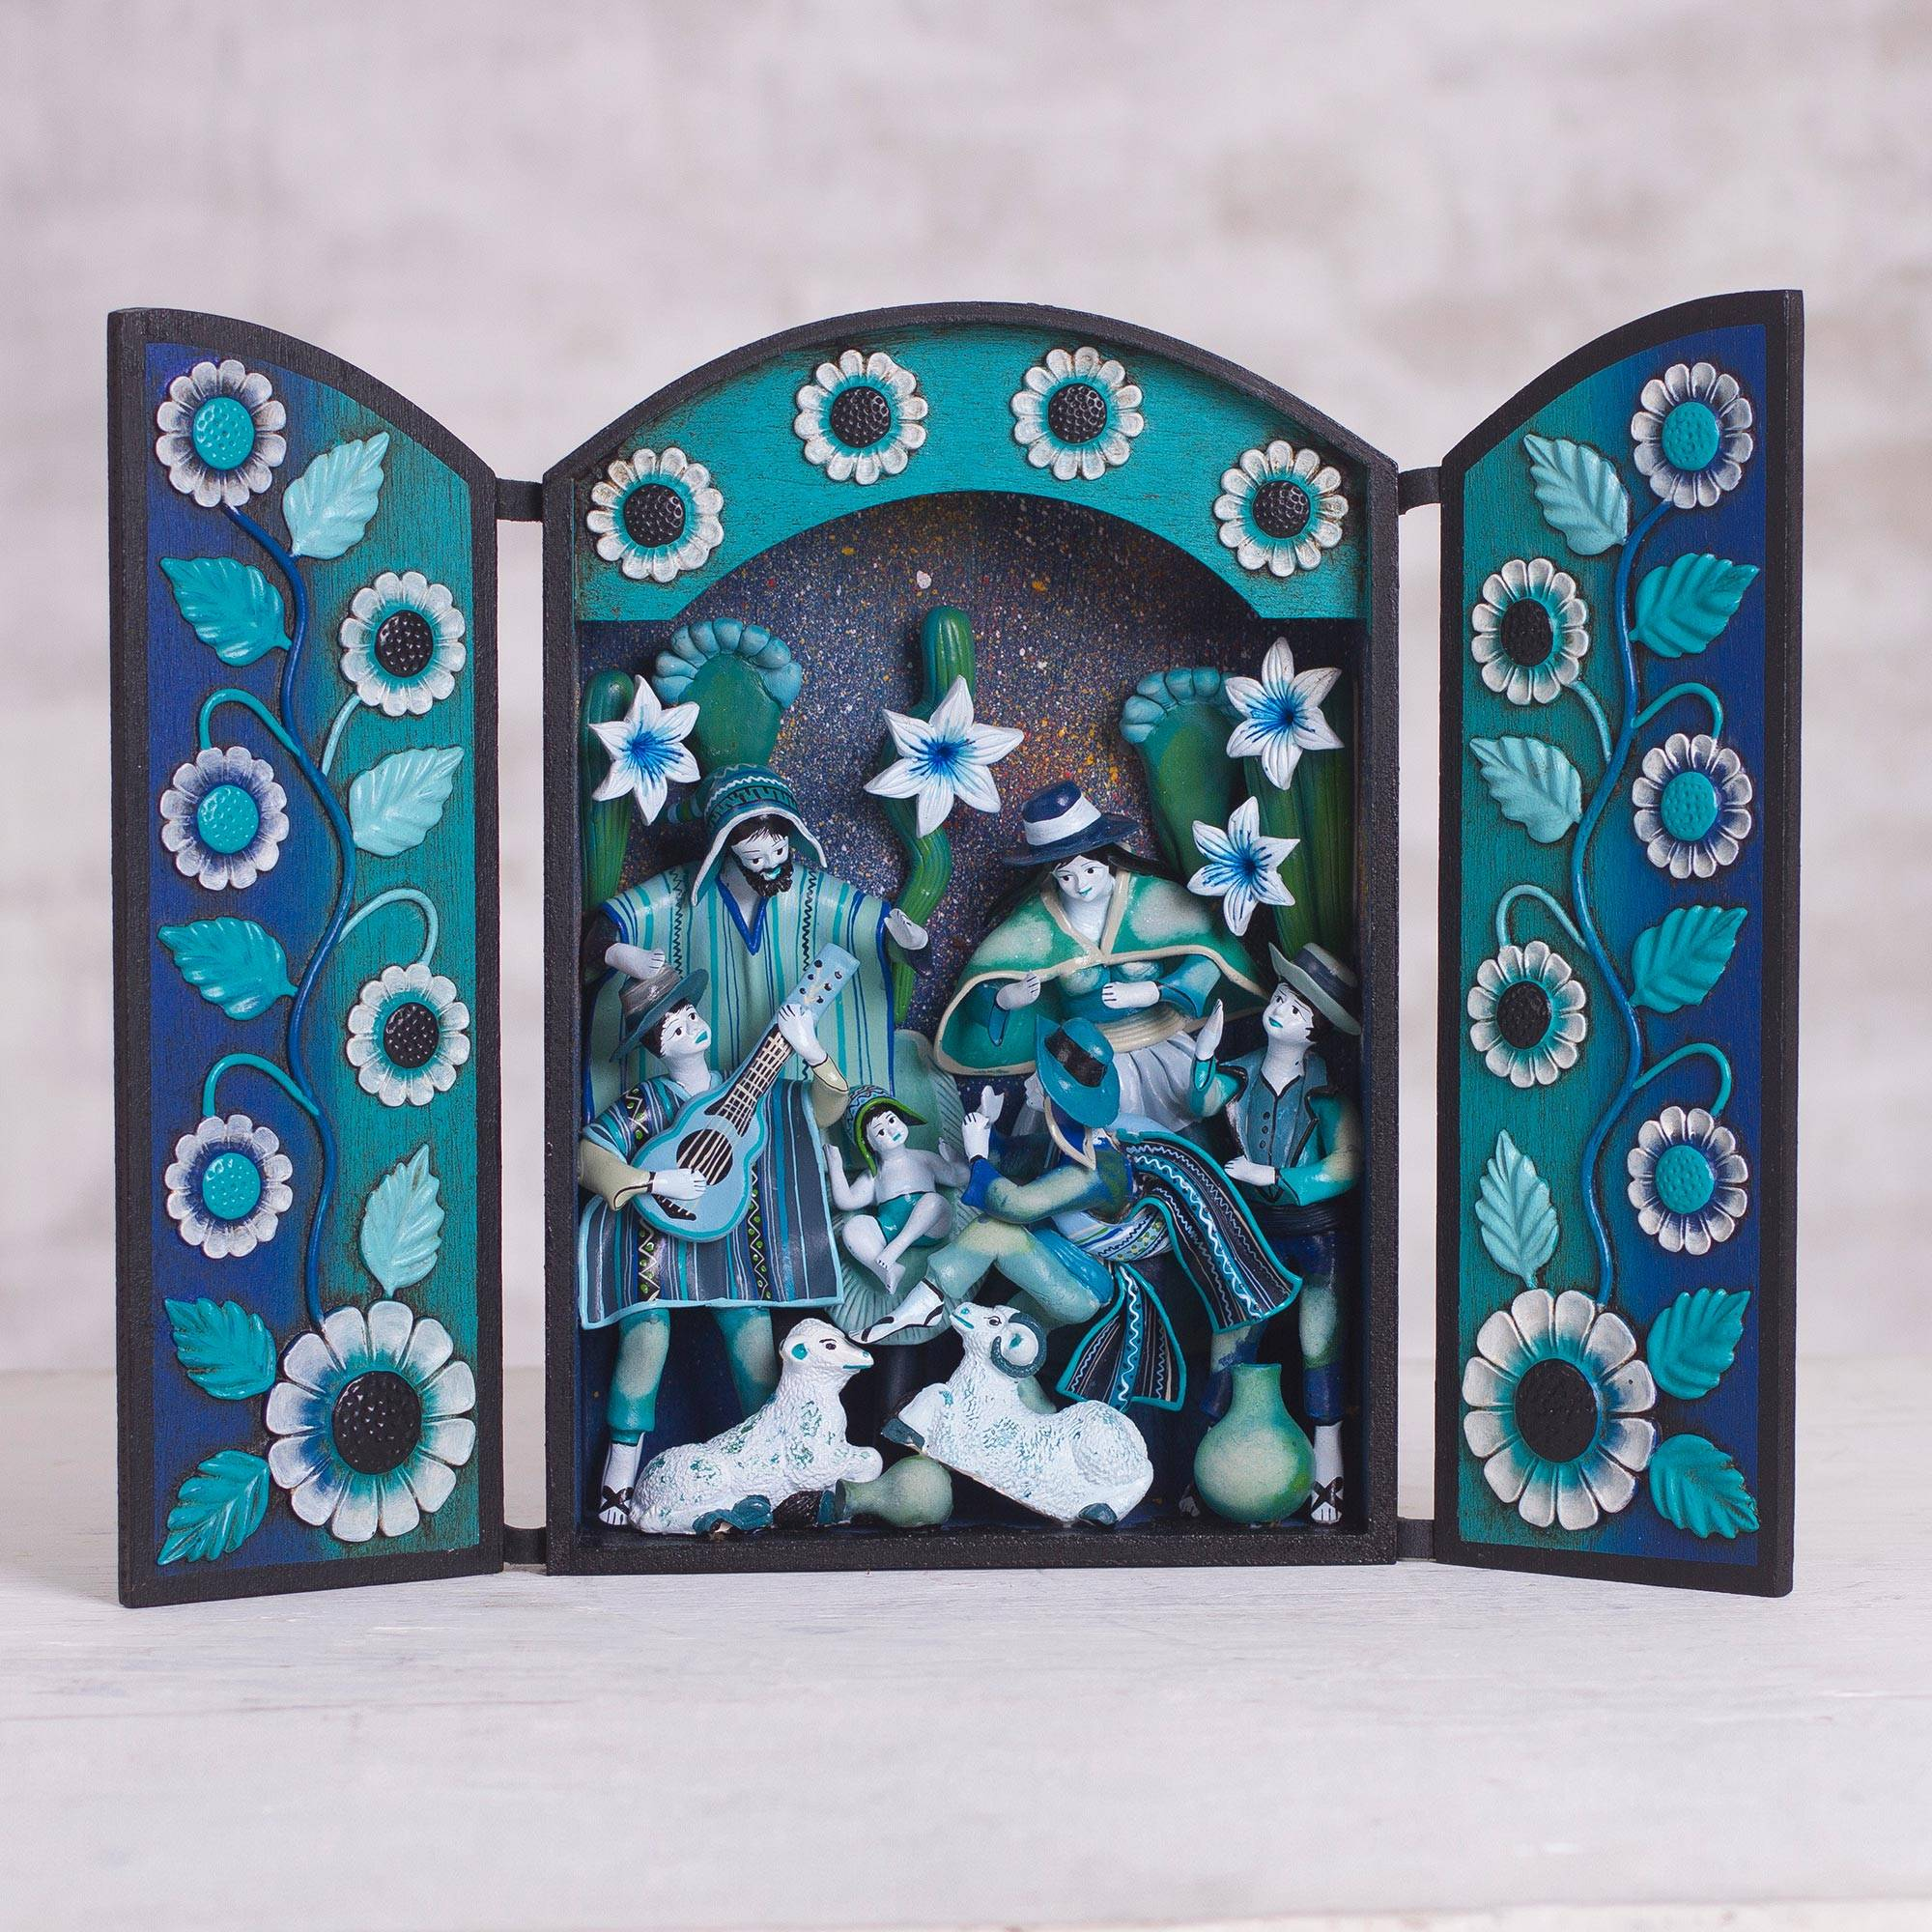 Joyous Night Blue Wood and Plaster Andean Nativity Retablo with Musicians